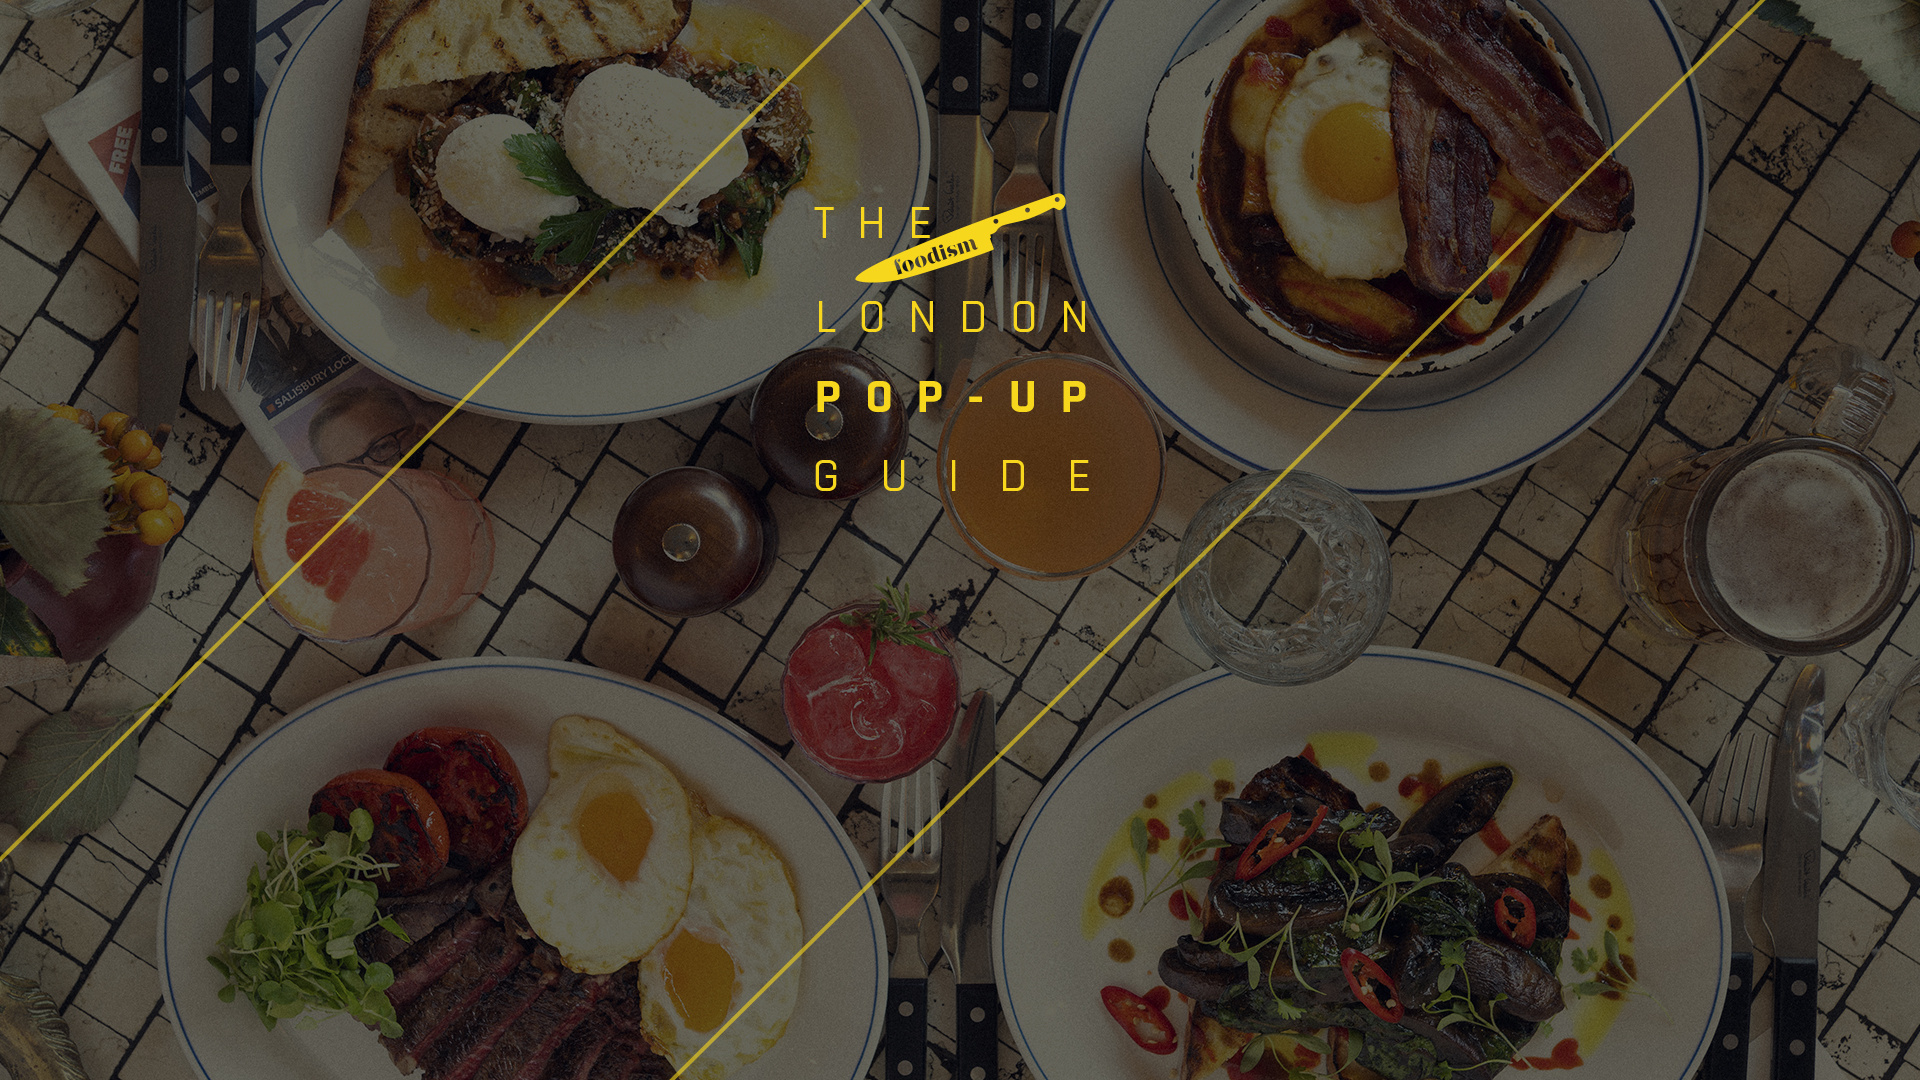 The London Pop-up Guide